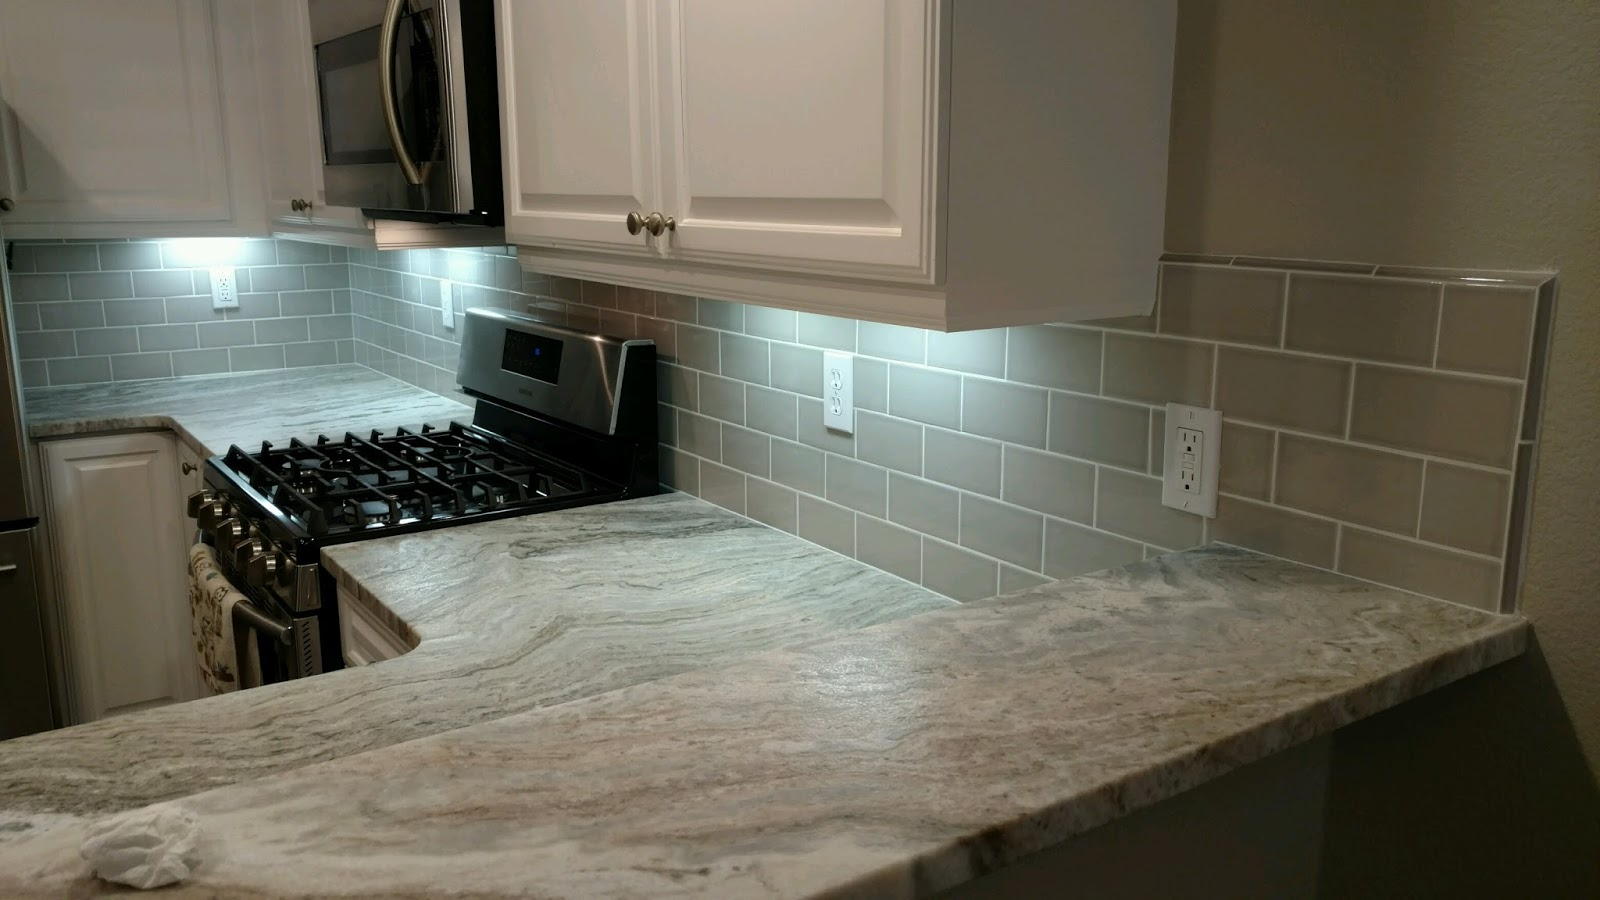 - Rock-It Surfaces Granite Countertop News At Www.rockyourhome.com